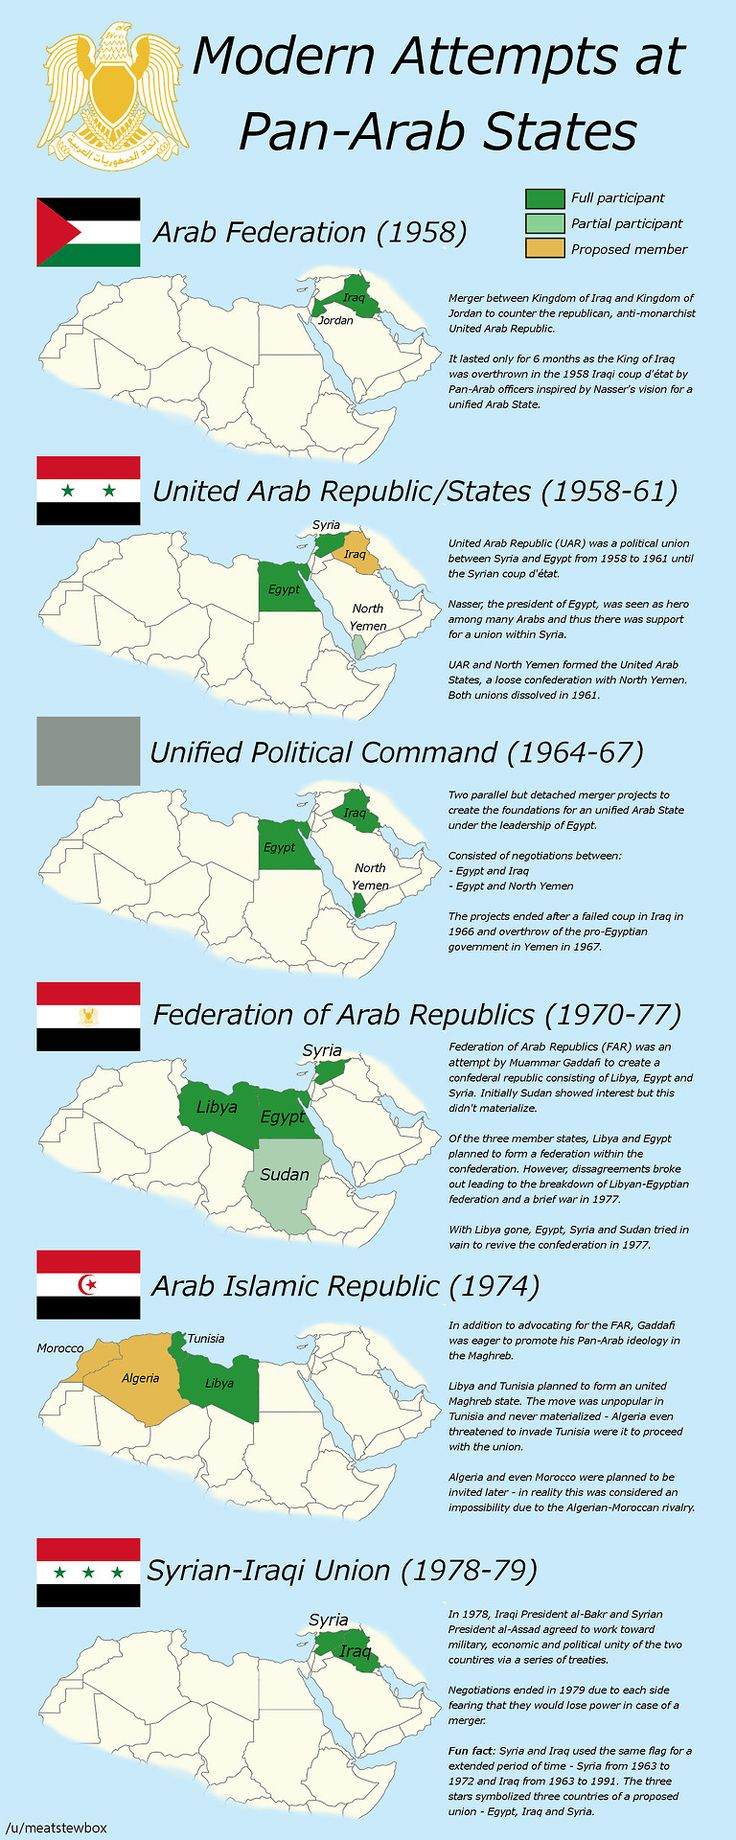 Modern attempts at Pan-Arab states.